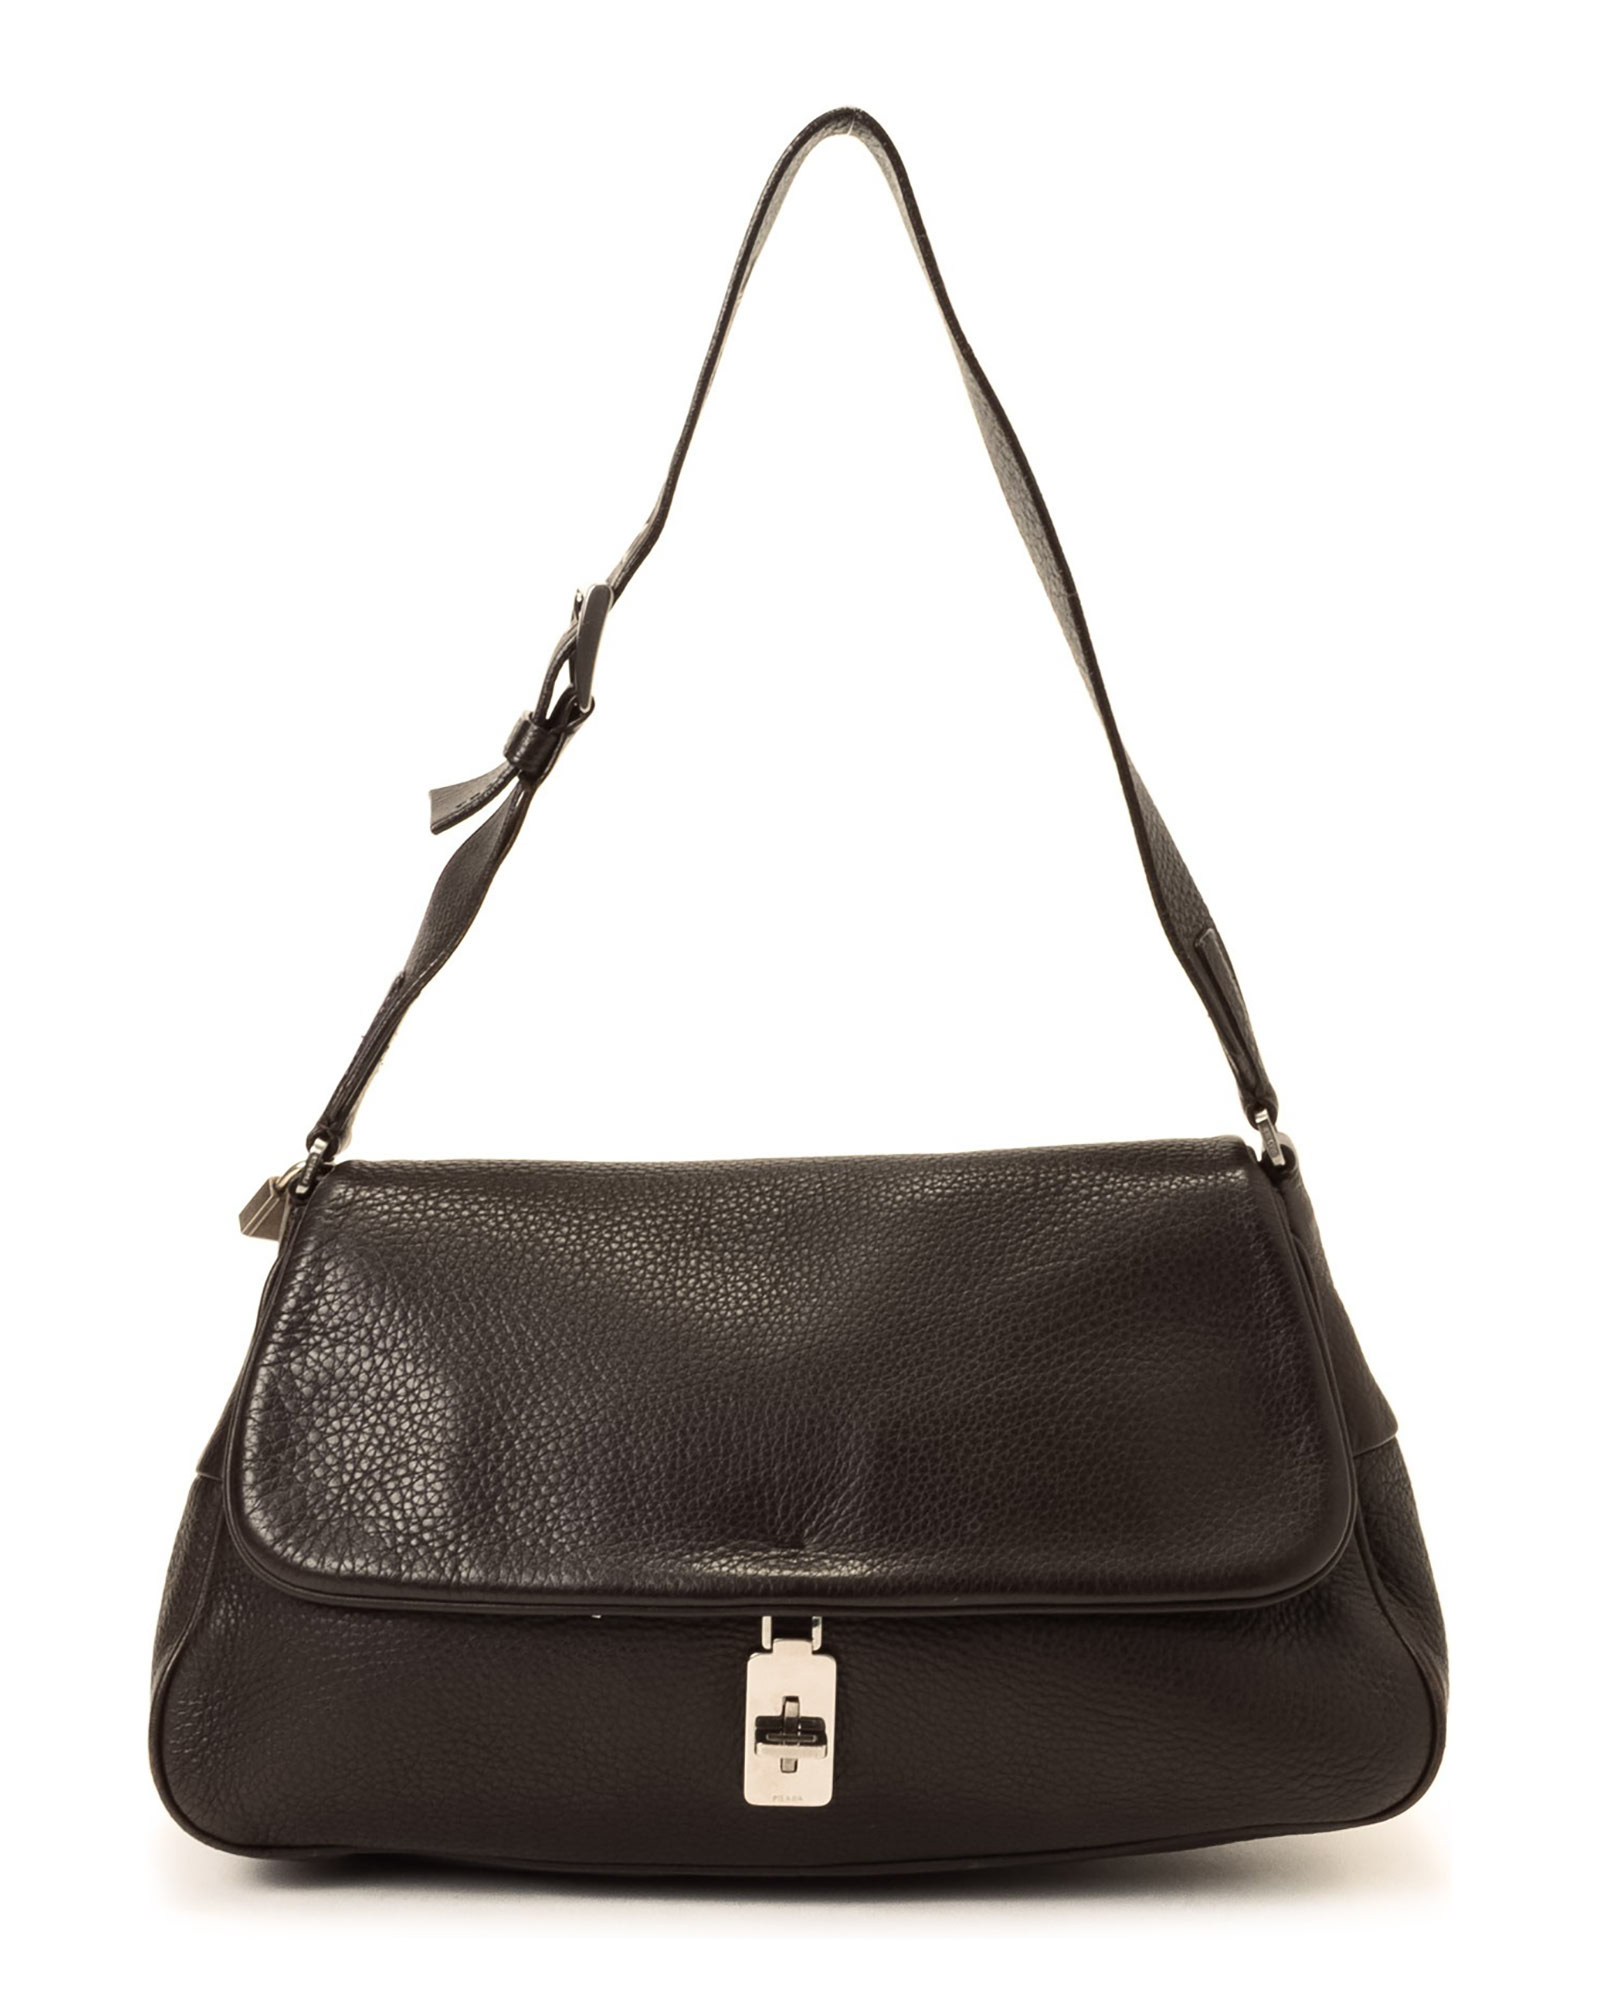 Prada Shoulder Bag - Vintage in Brown | Lyst